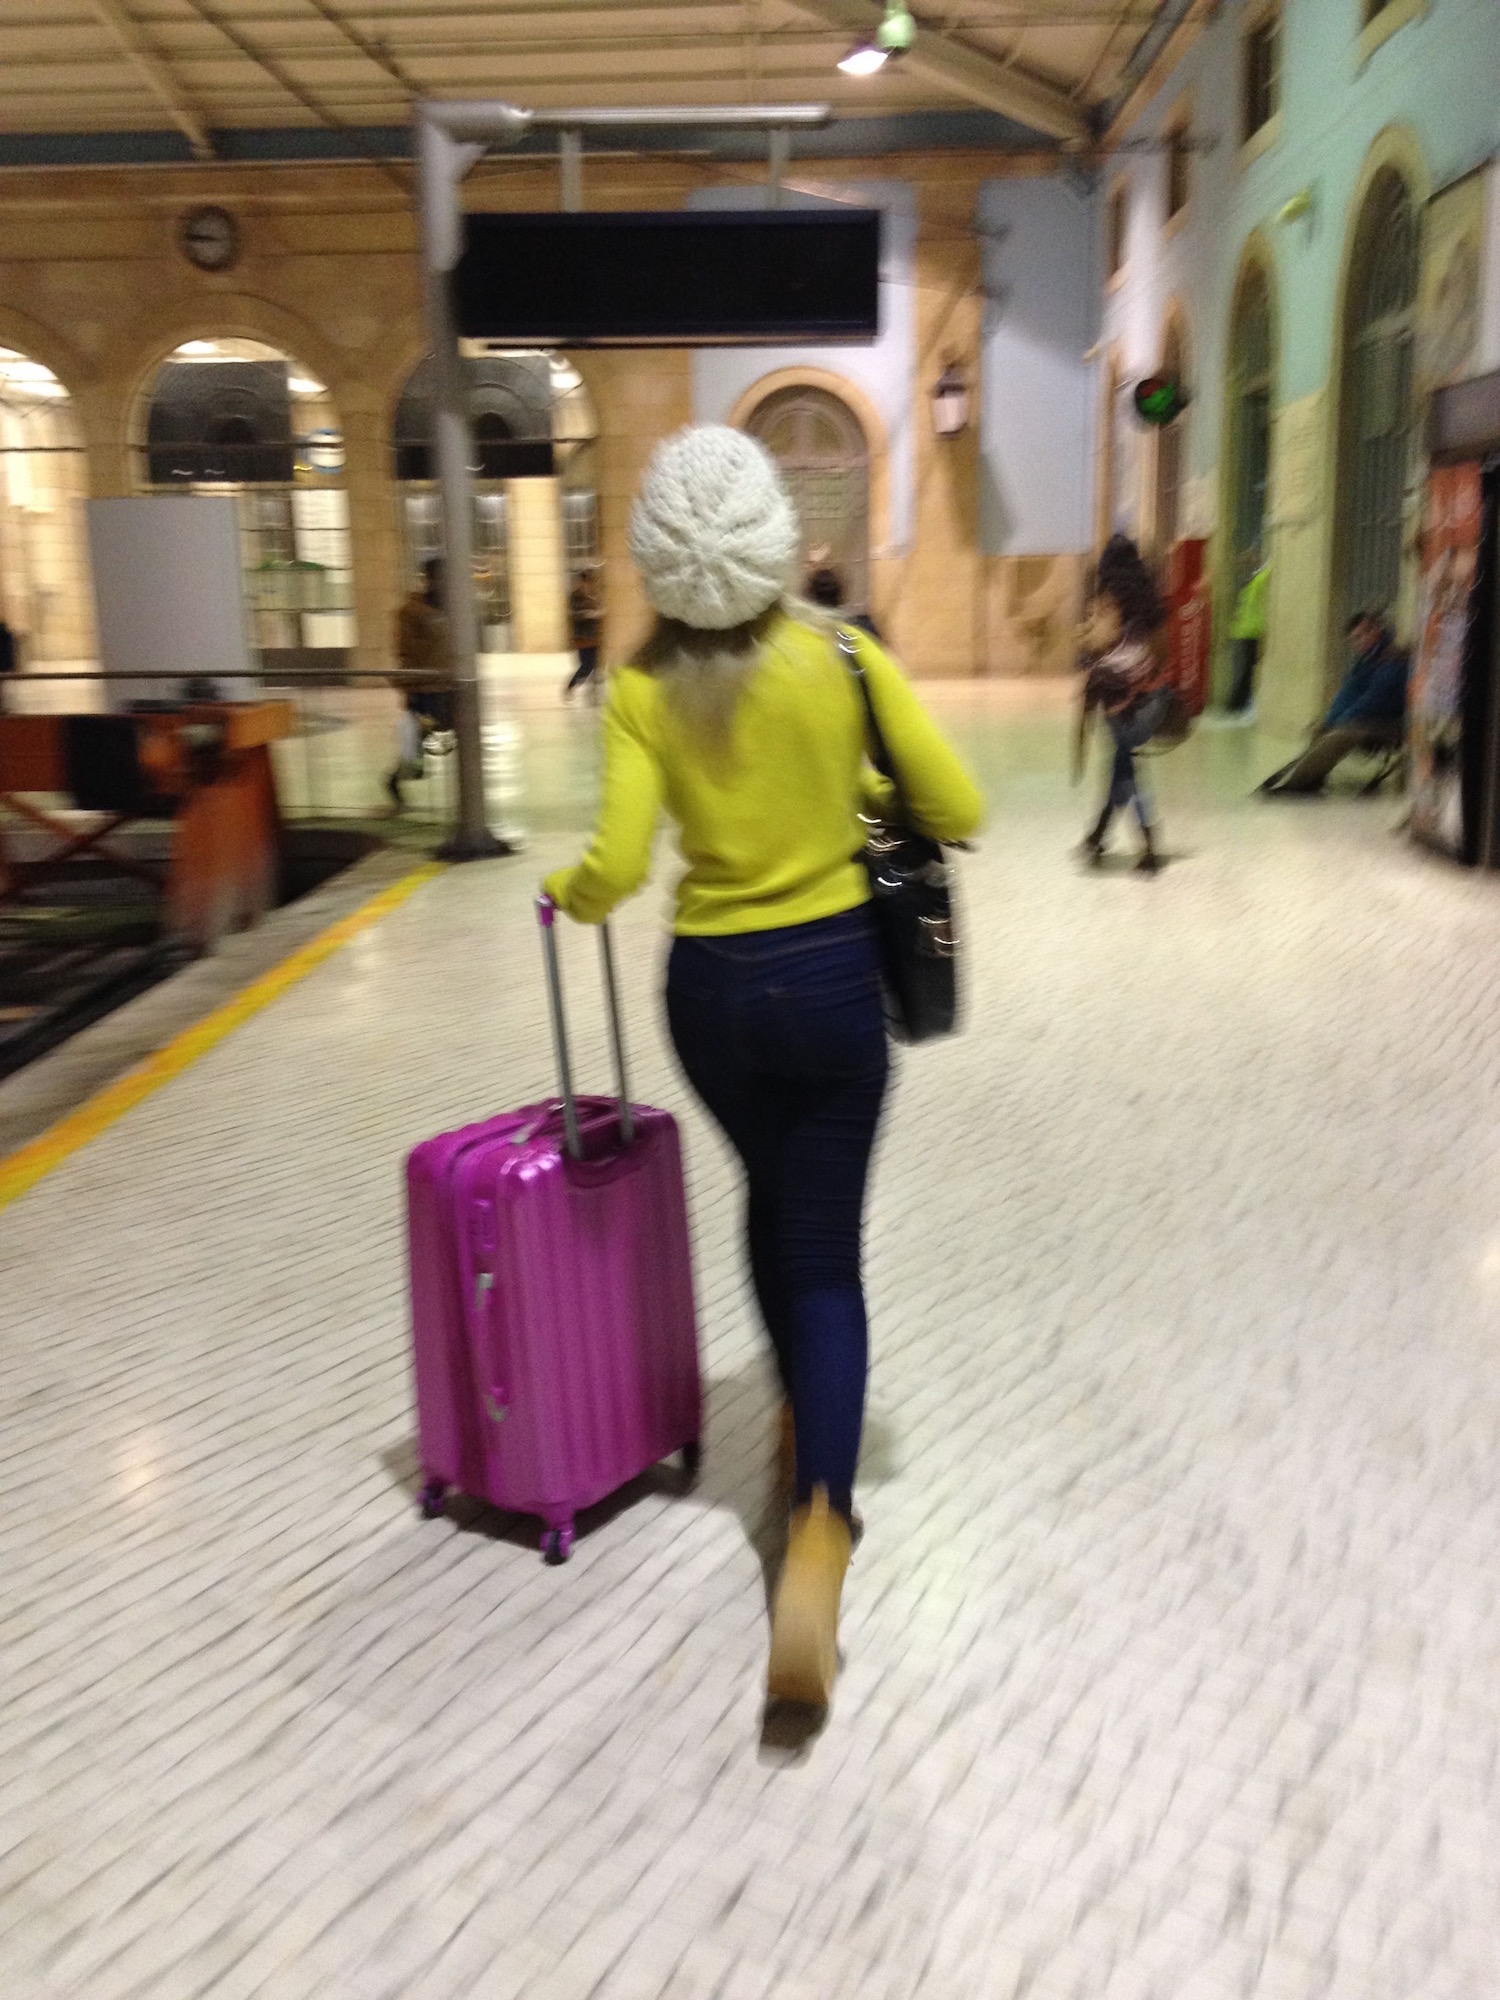 Pure style in Lisbon's Santa Apolónia train station— welcome to Lisbon!